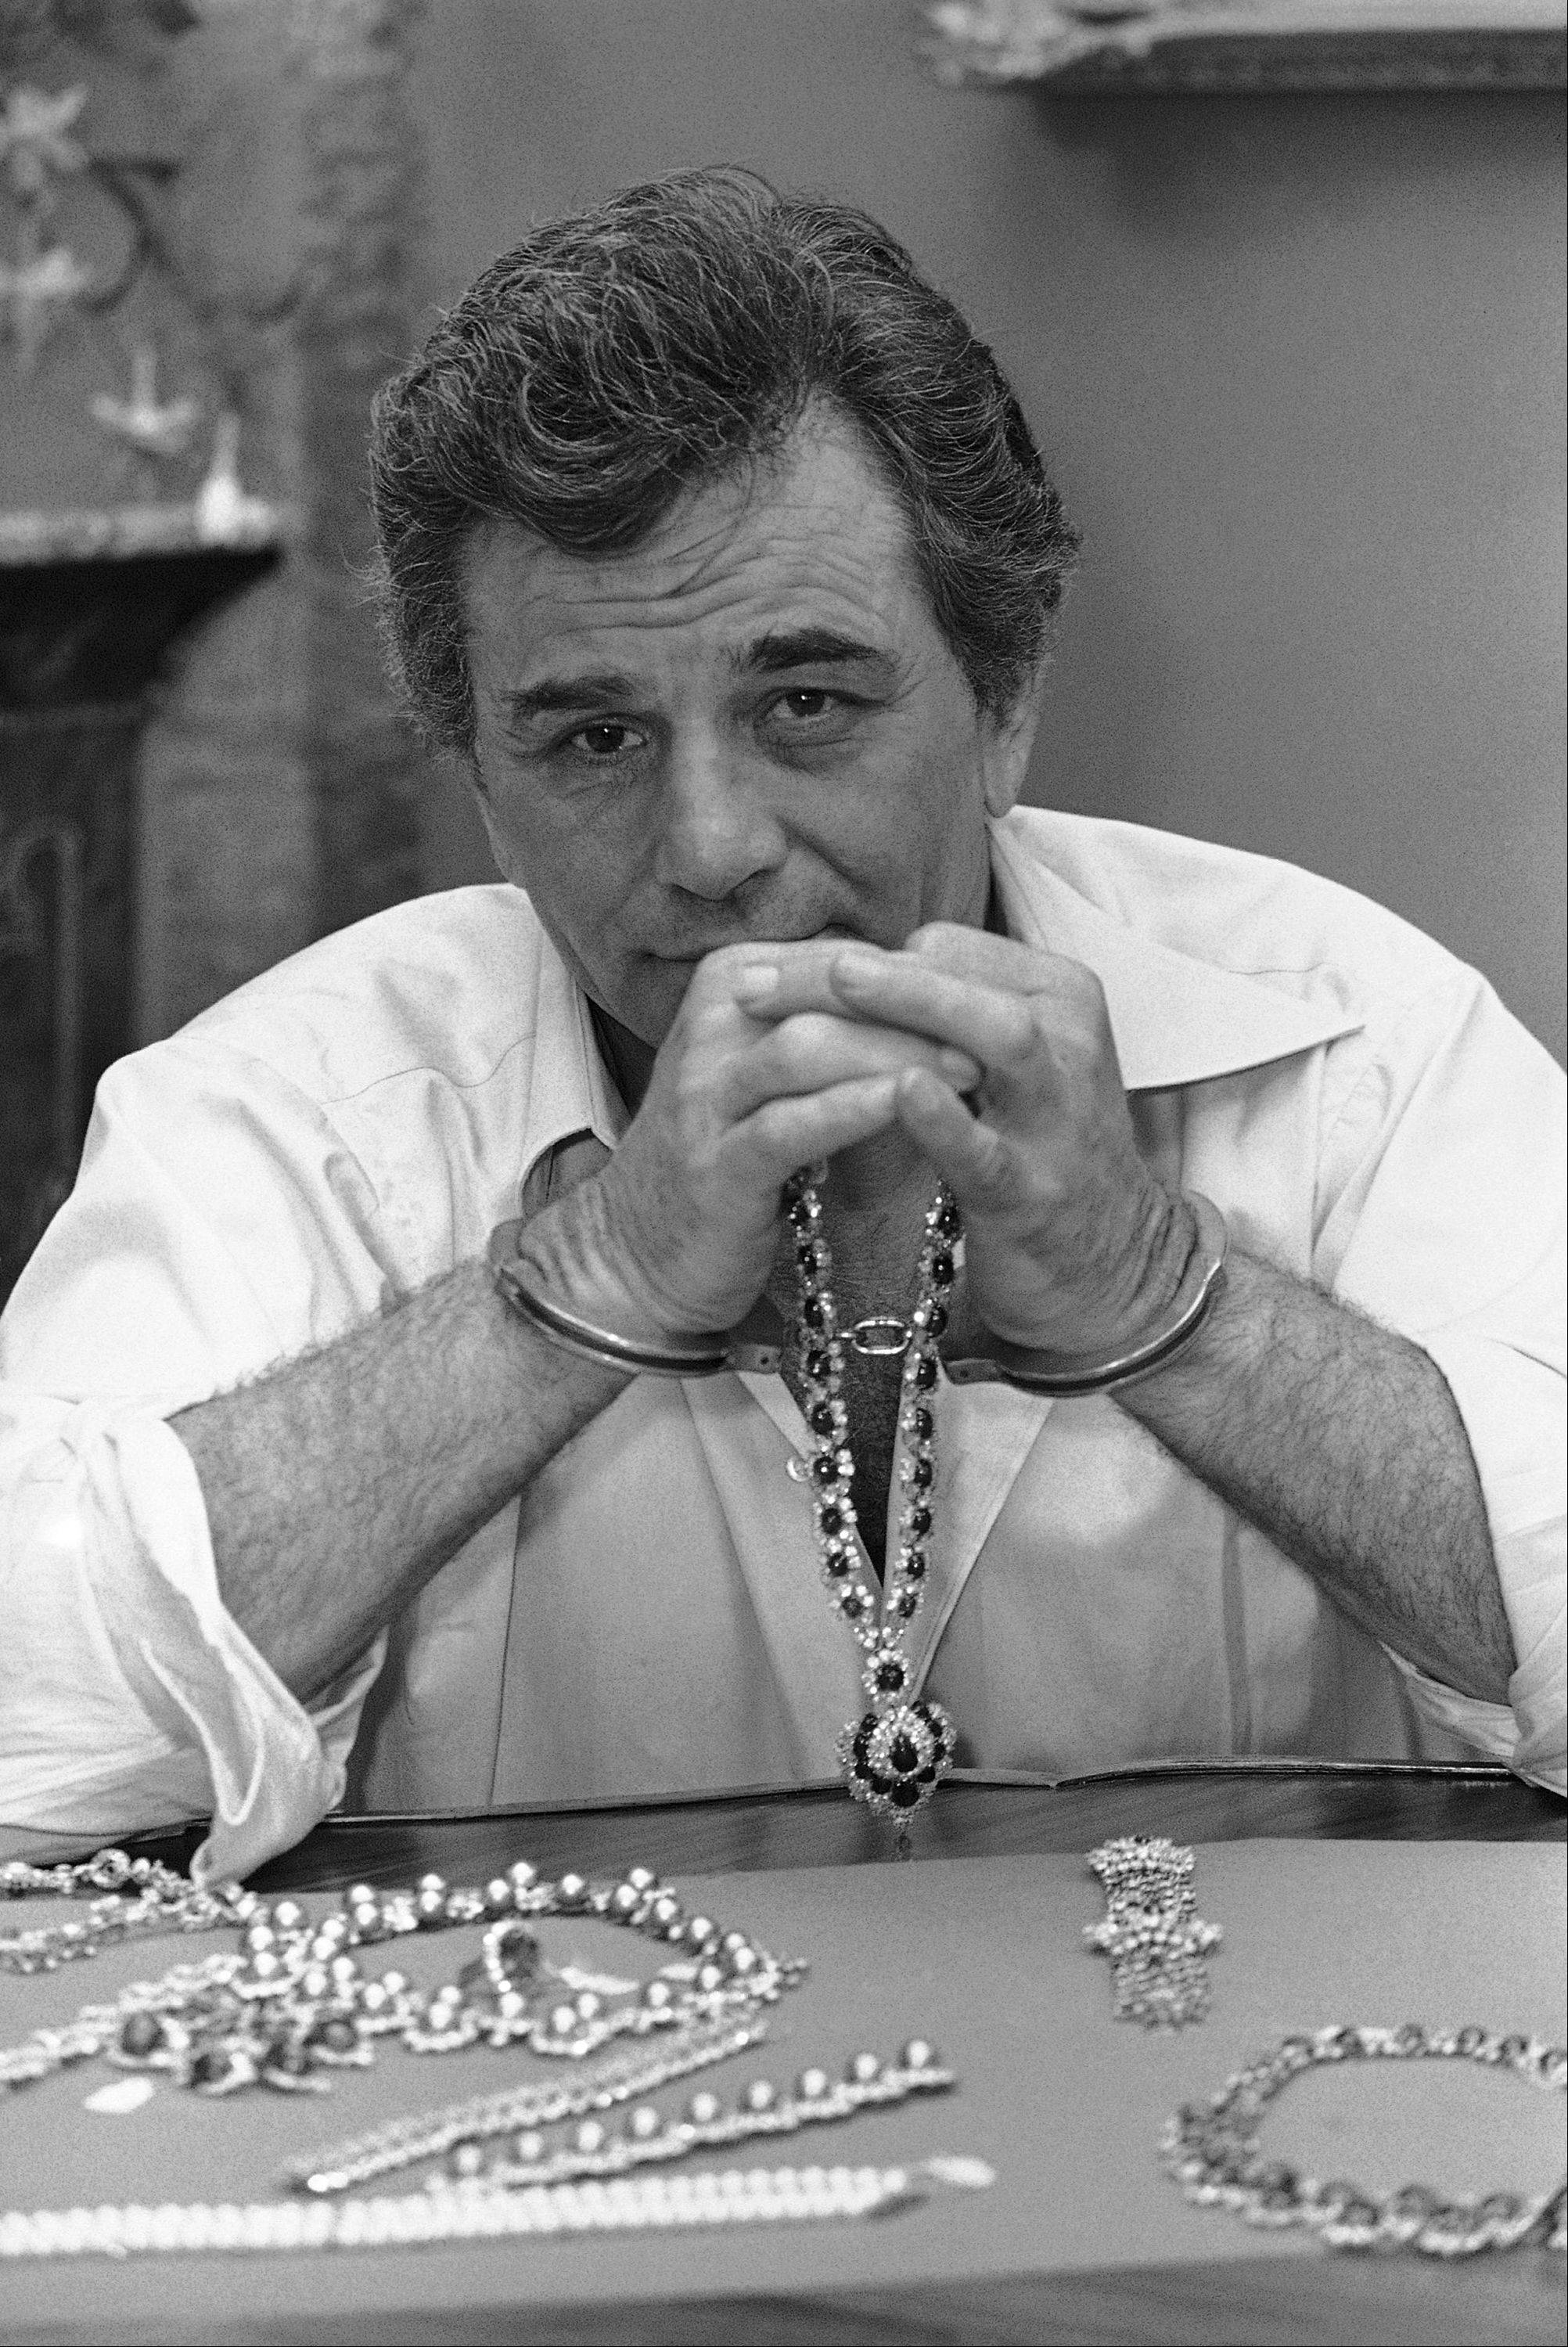 "Actor Peter Falk poses with $8-million in diamonds, emeralds and gold while handcuffed at the set of Columbia Pictures ""Happy New Year"" being filmed in Fort Lauderdale, Fla., on June 3, 1985. The gems were under heavy guard during the shooting session and were reported to have been flown in from New York for the filming. The film also stars Charles Durning, who, with Falk, become jewel thieves."